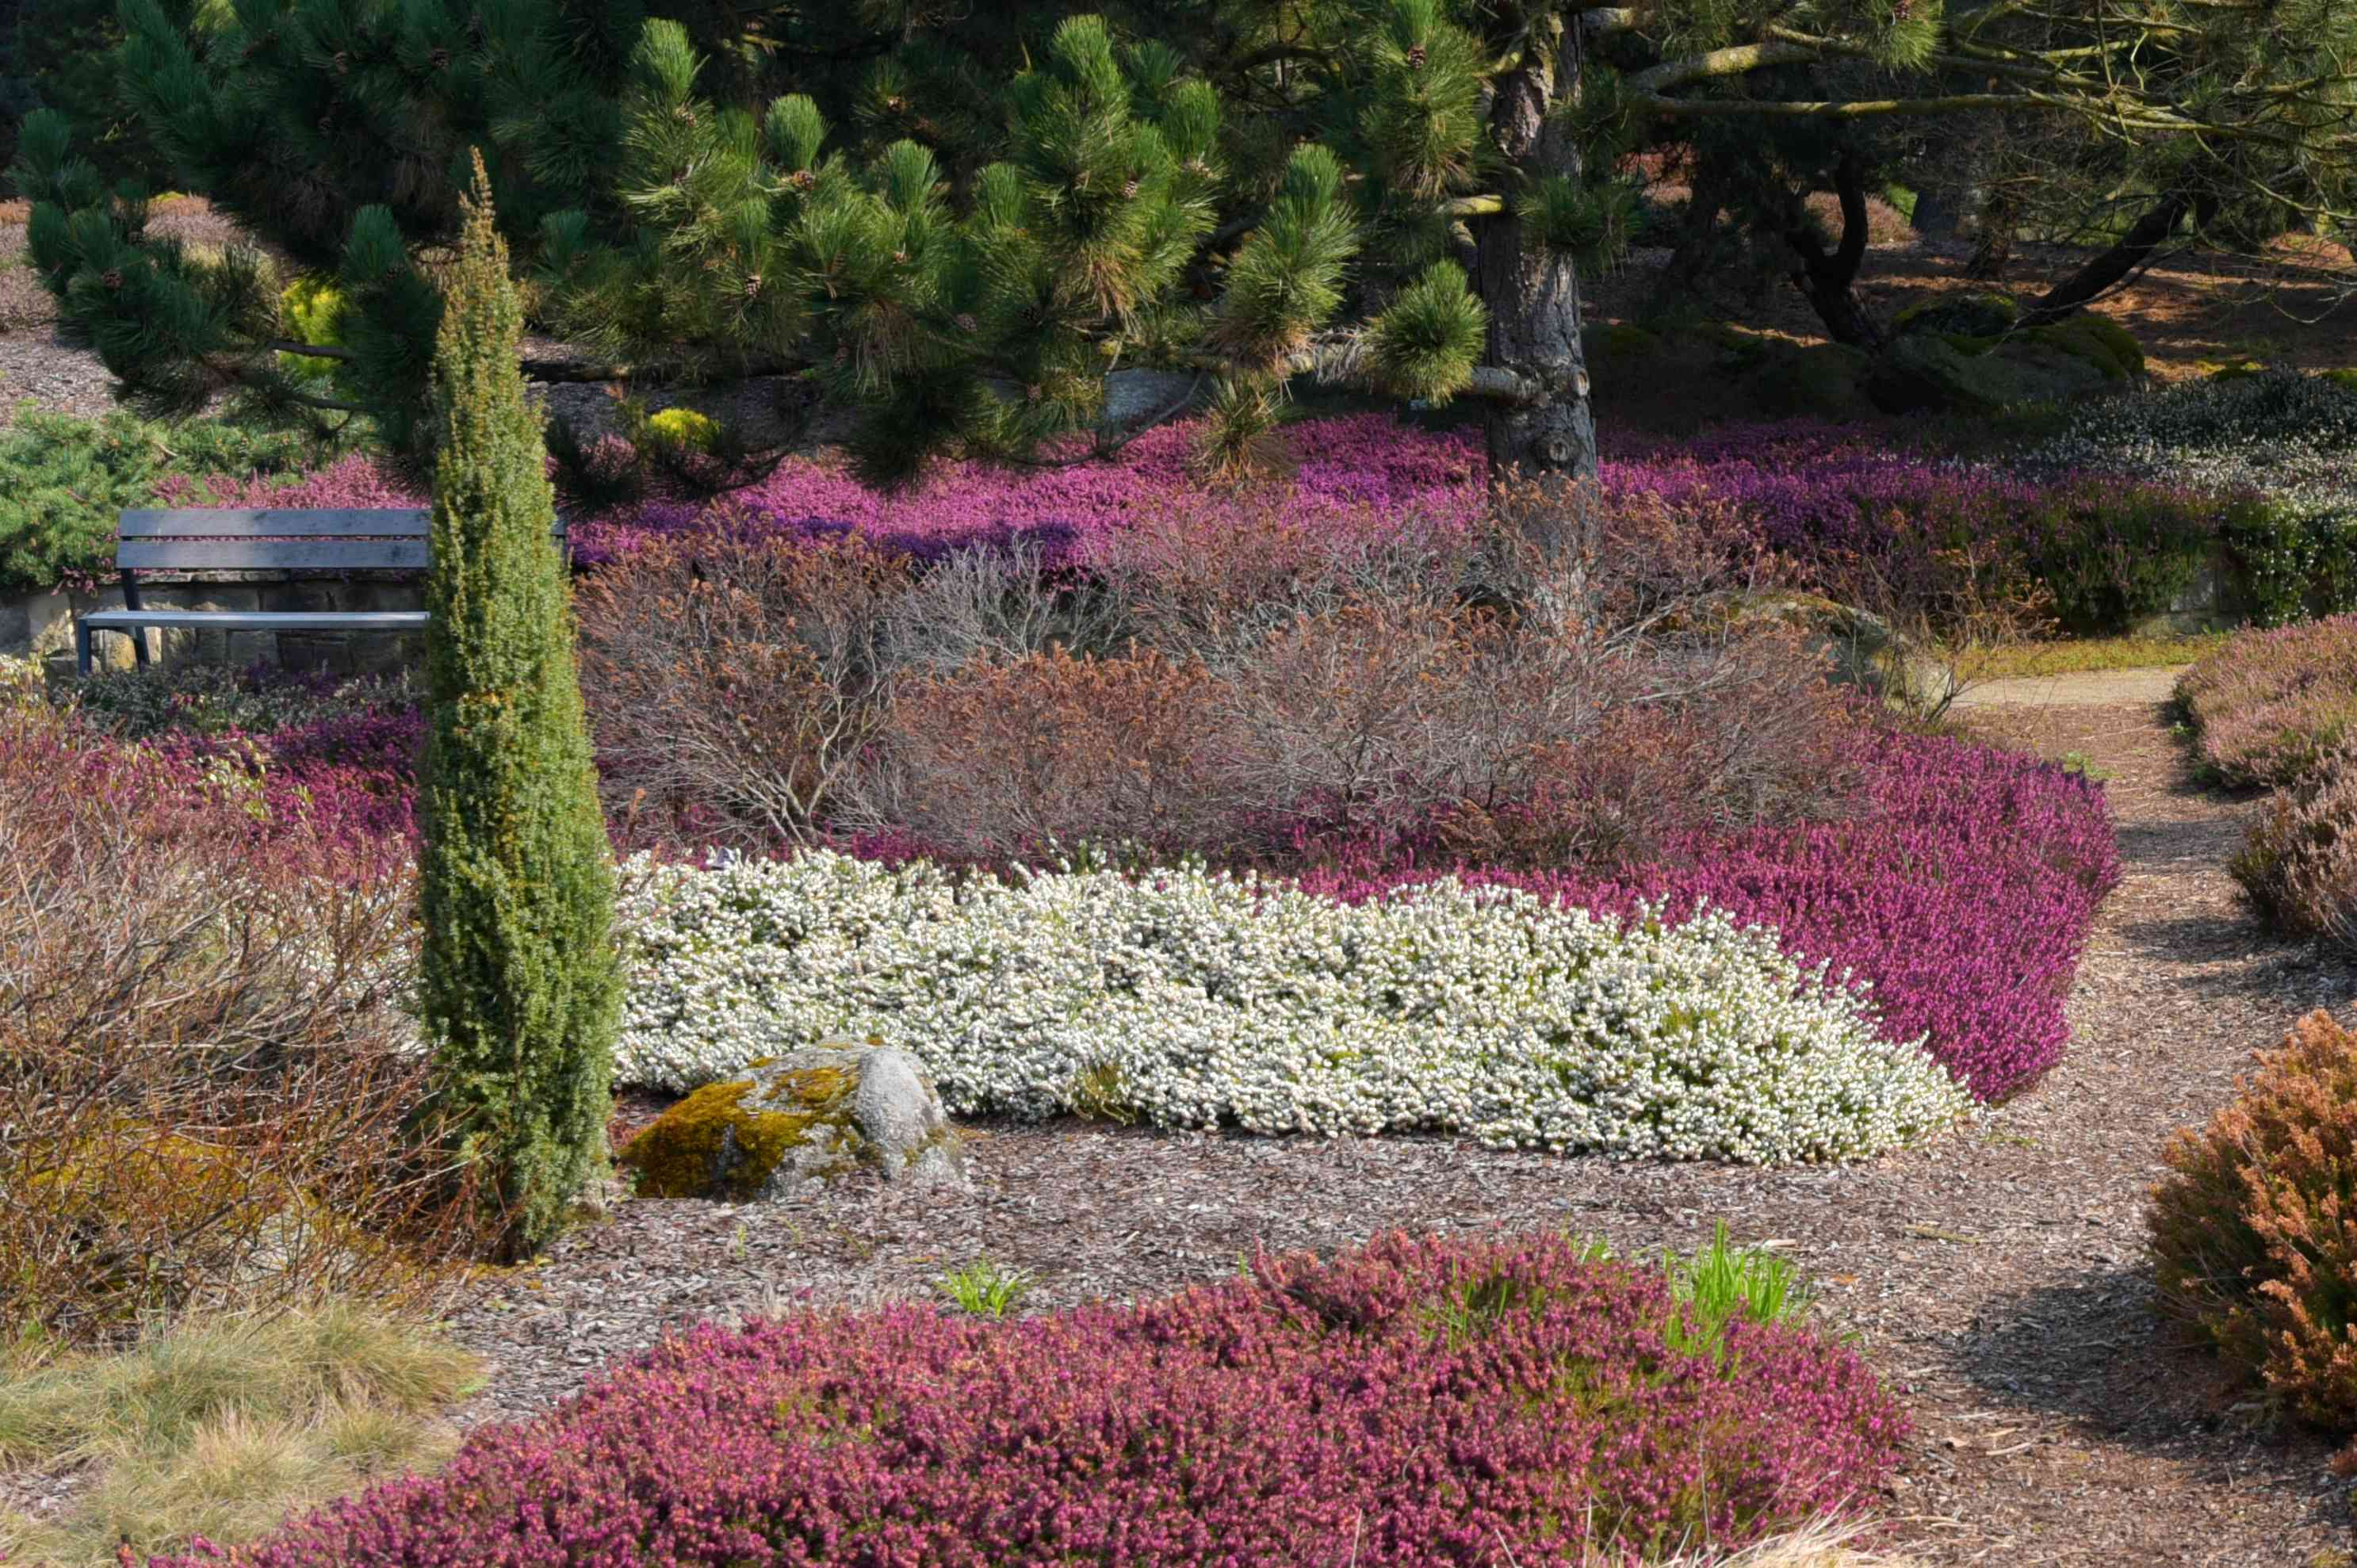 Dwarf juniper tree in middle of garden with white and pink bushes in sunlight